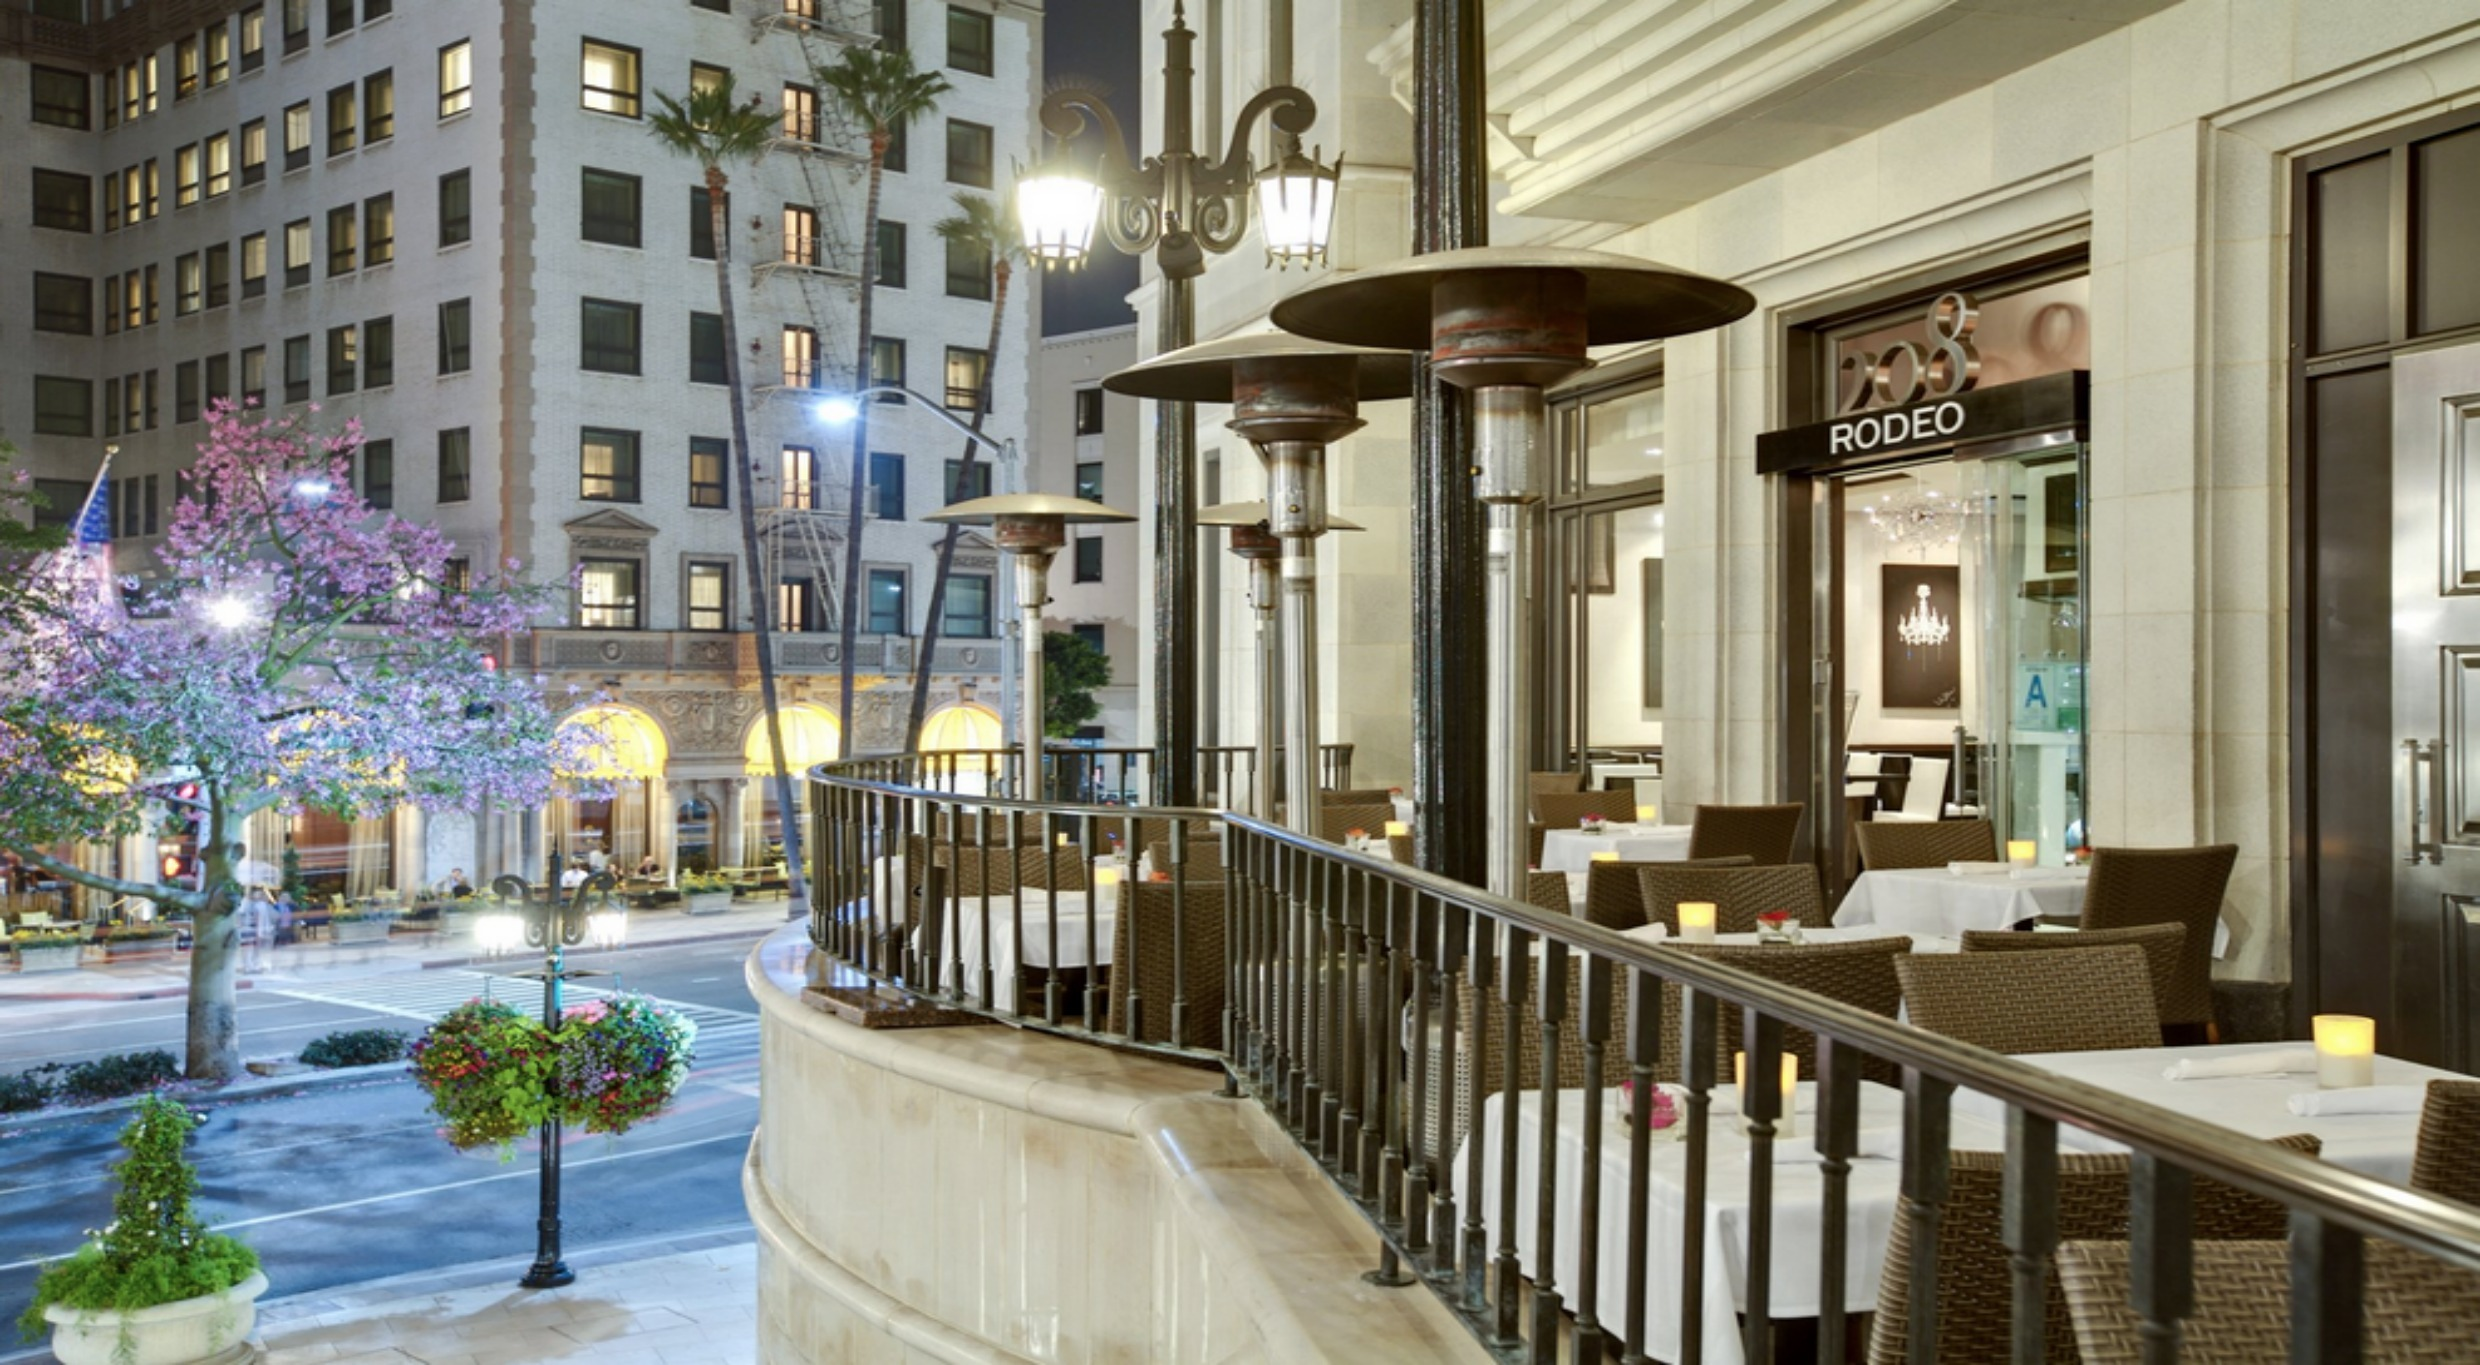 208 Rodeo Restaurants In Beverly Hills Los Angeles